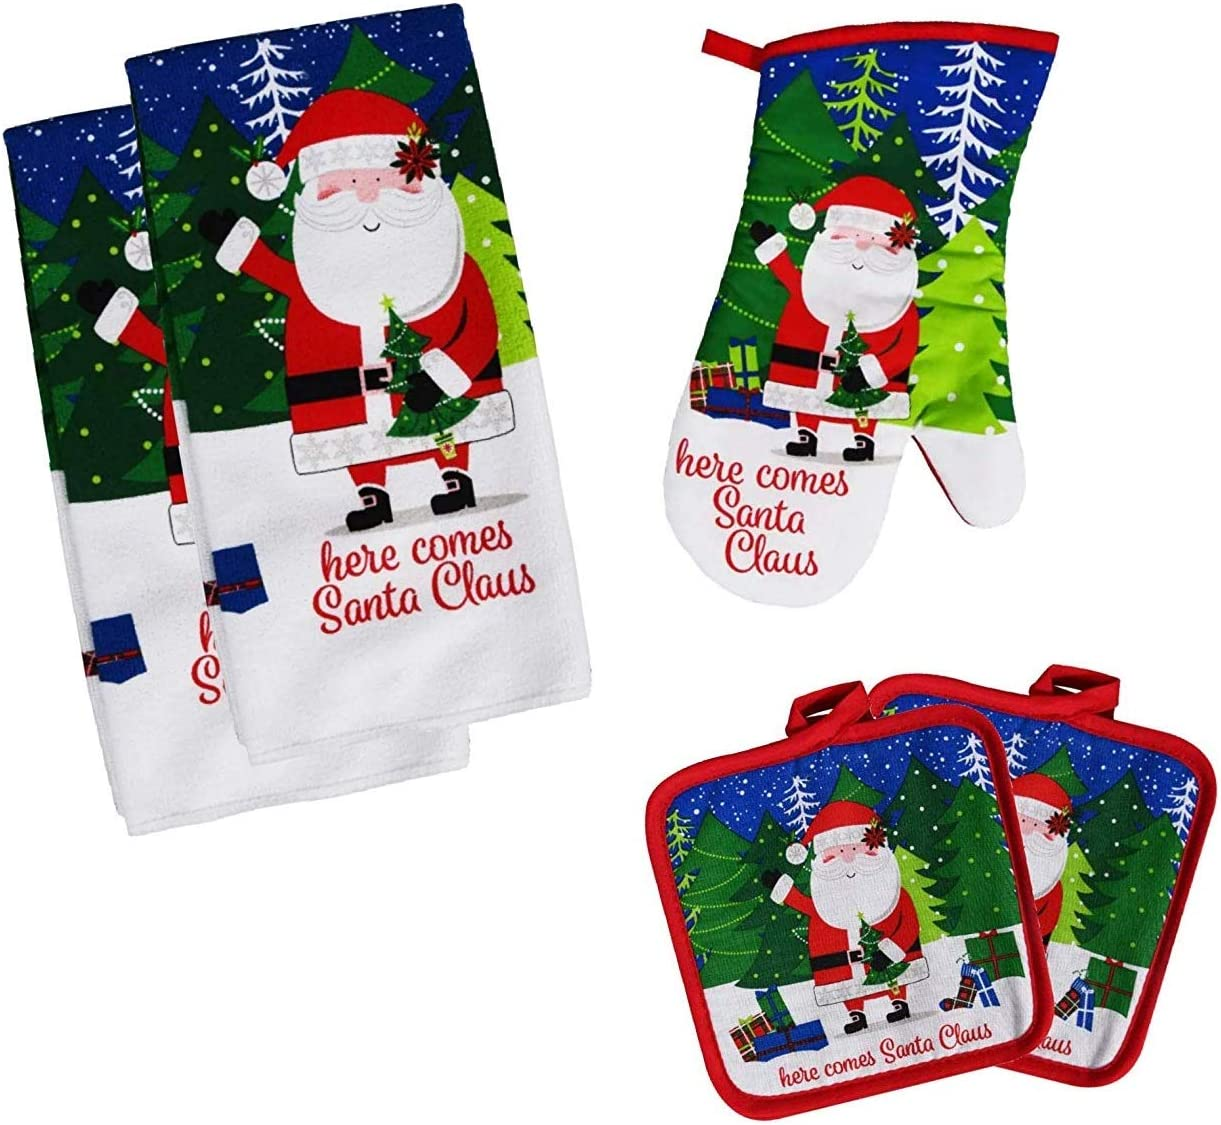 Christmas Towel Set, Winter Themed Decor for Kitchen Bundle of 5 Items, 2 Towels, 2 Potholders, 1 Oven Mitt (Here Comes Santa Claus)